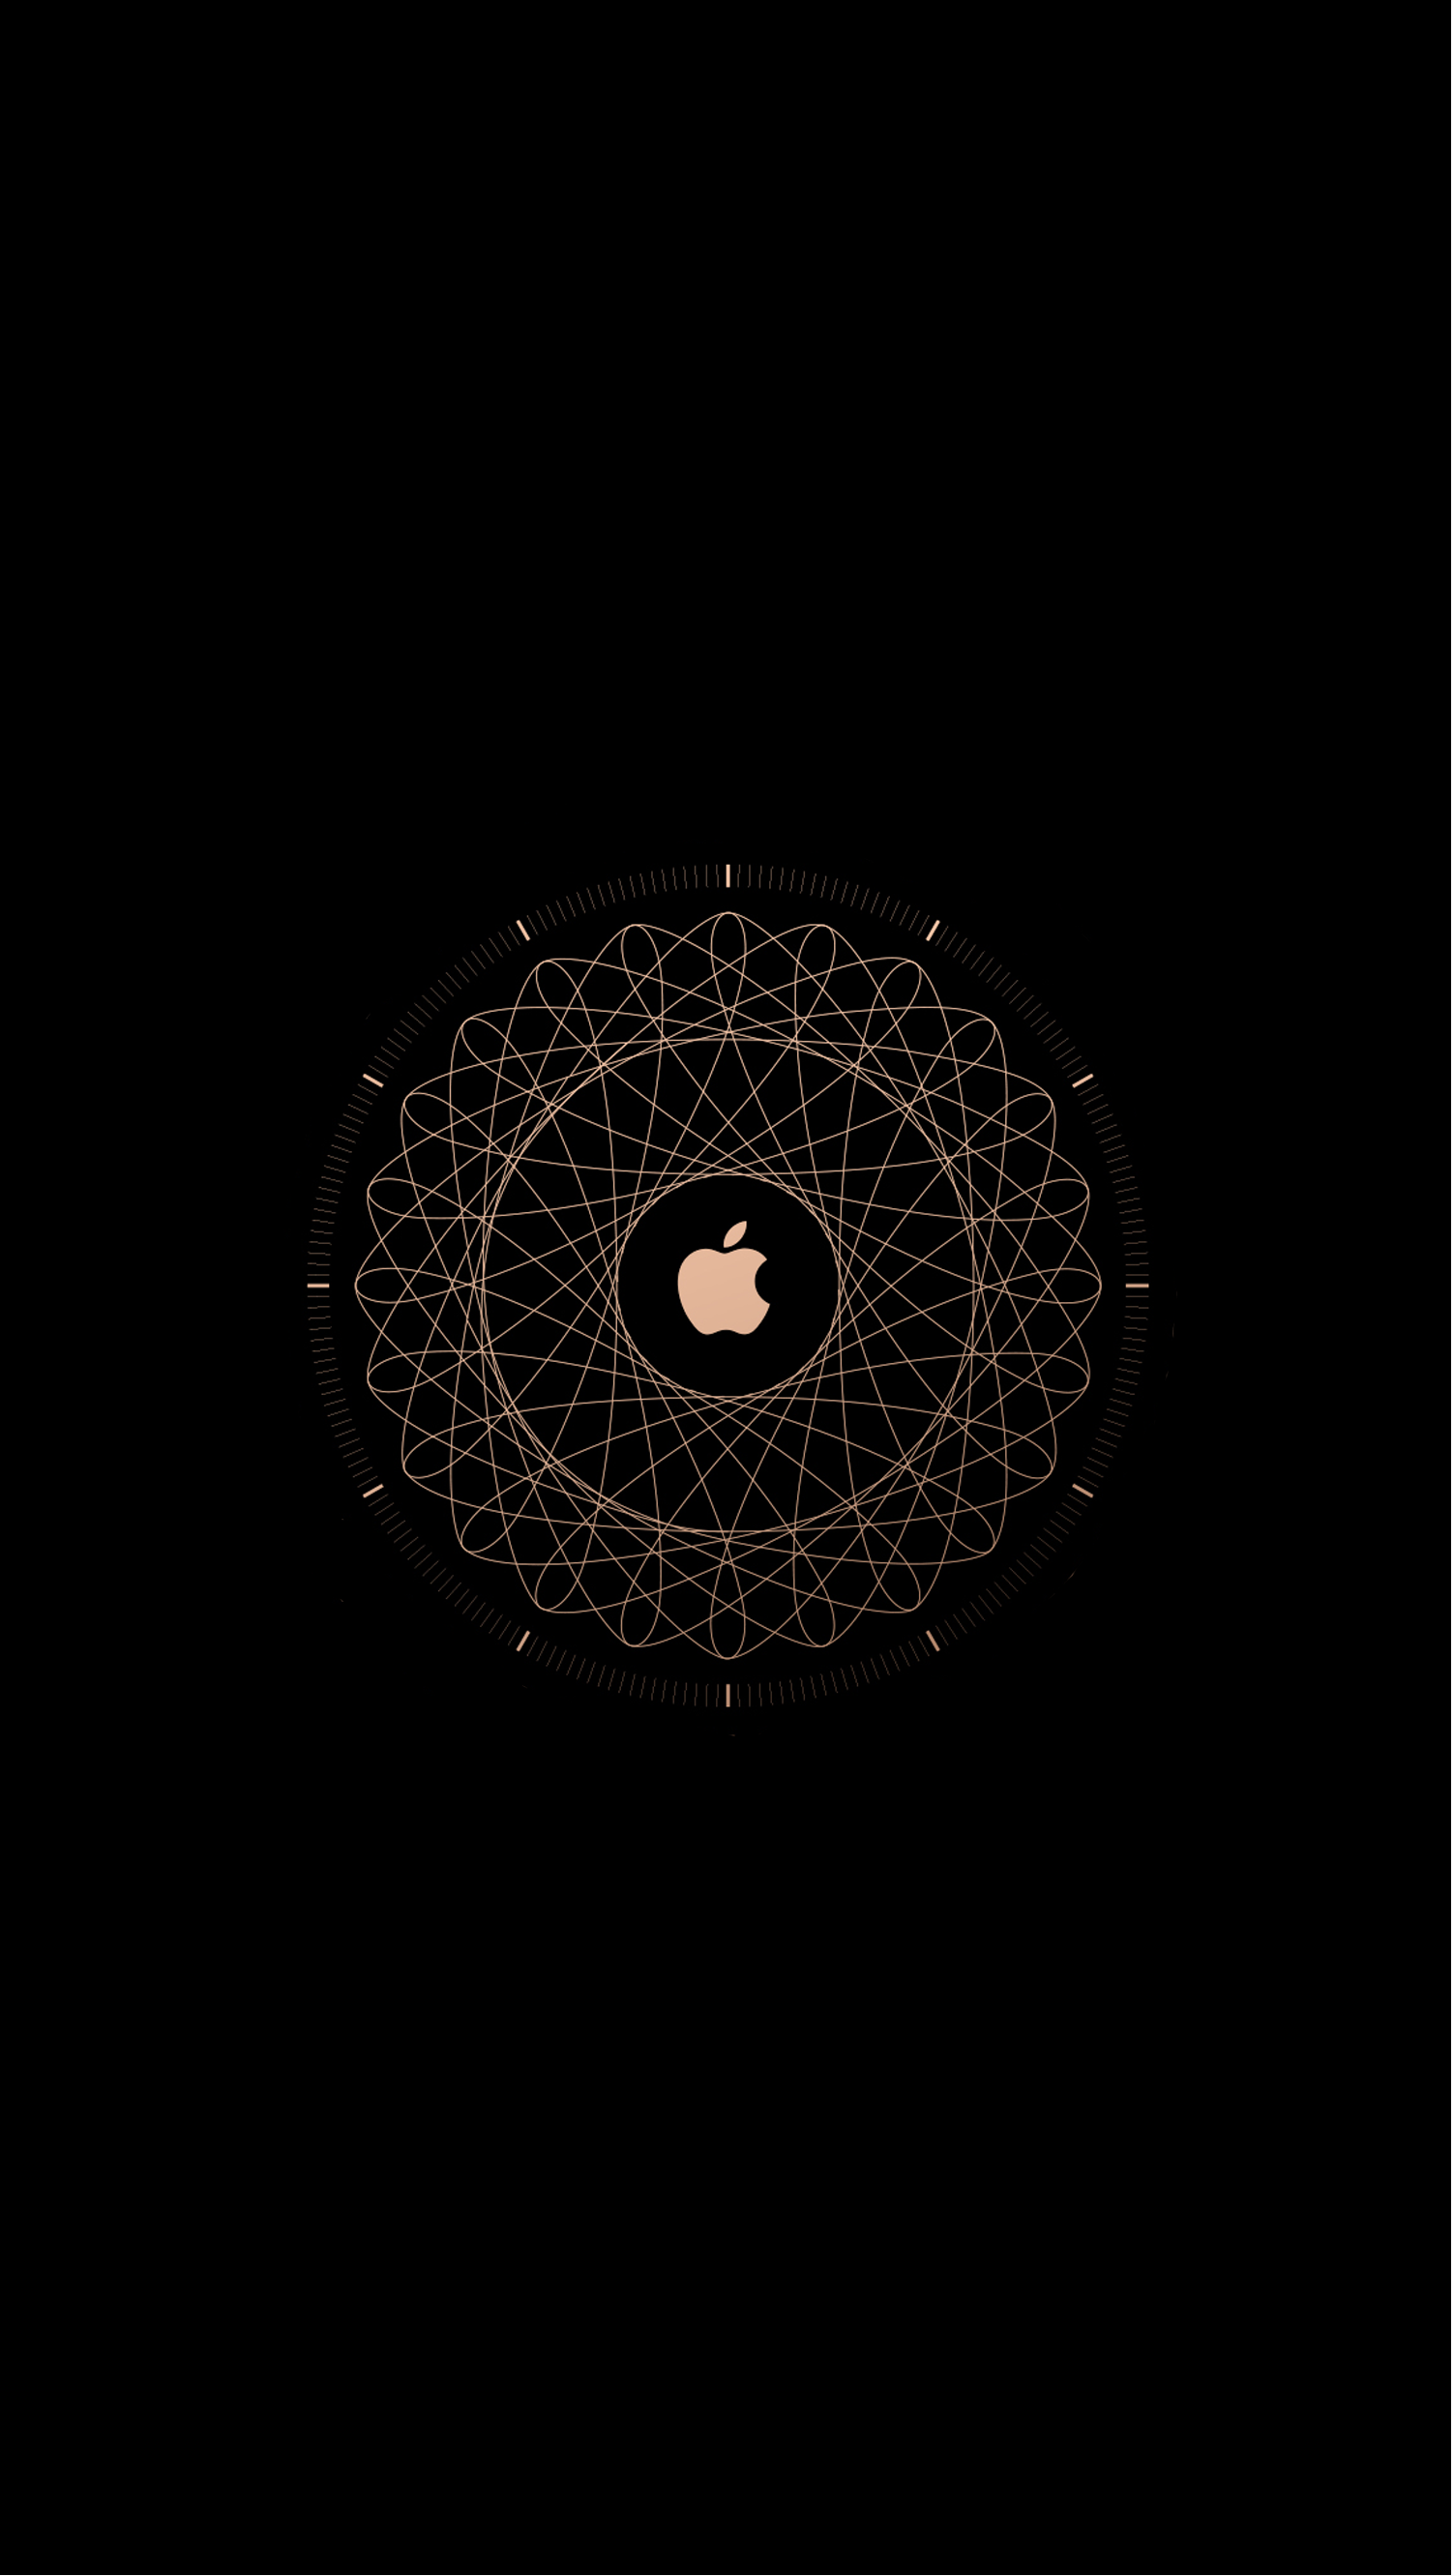 Apple Watch Wallpapers For Iphone Ipad And Desktop